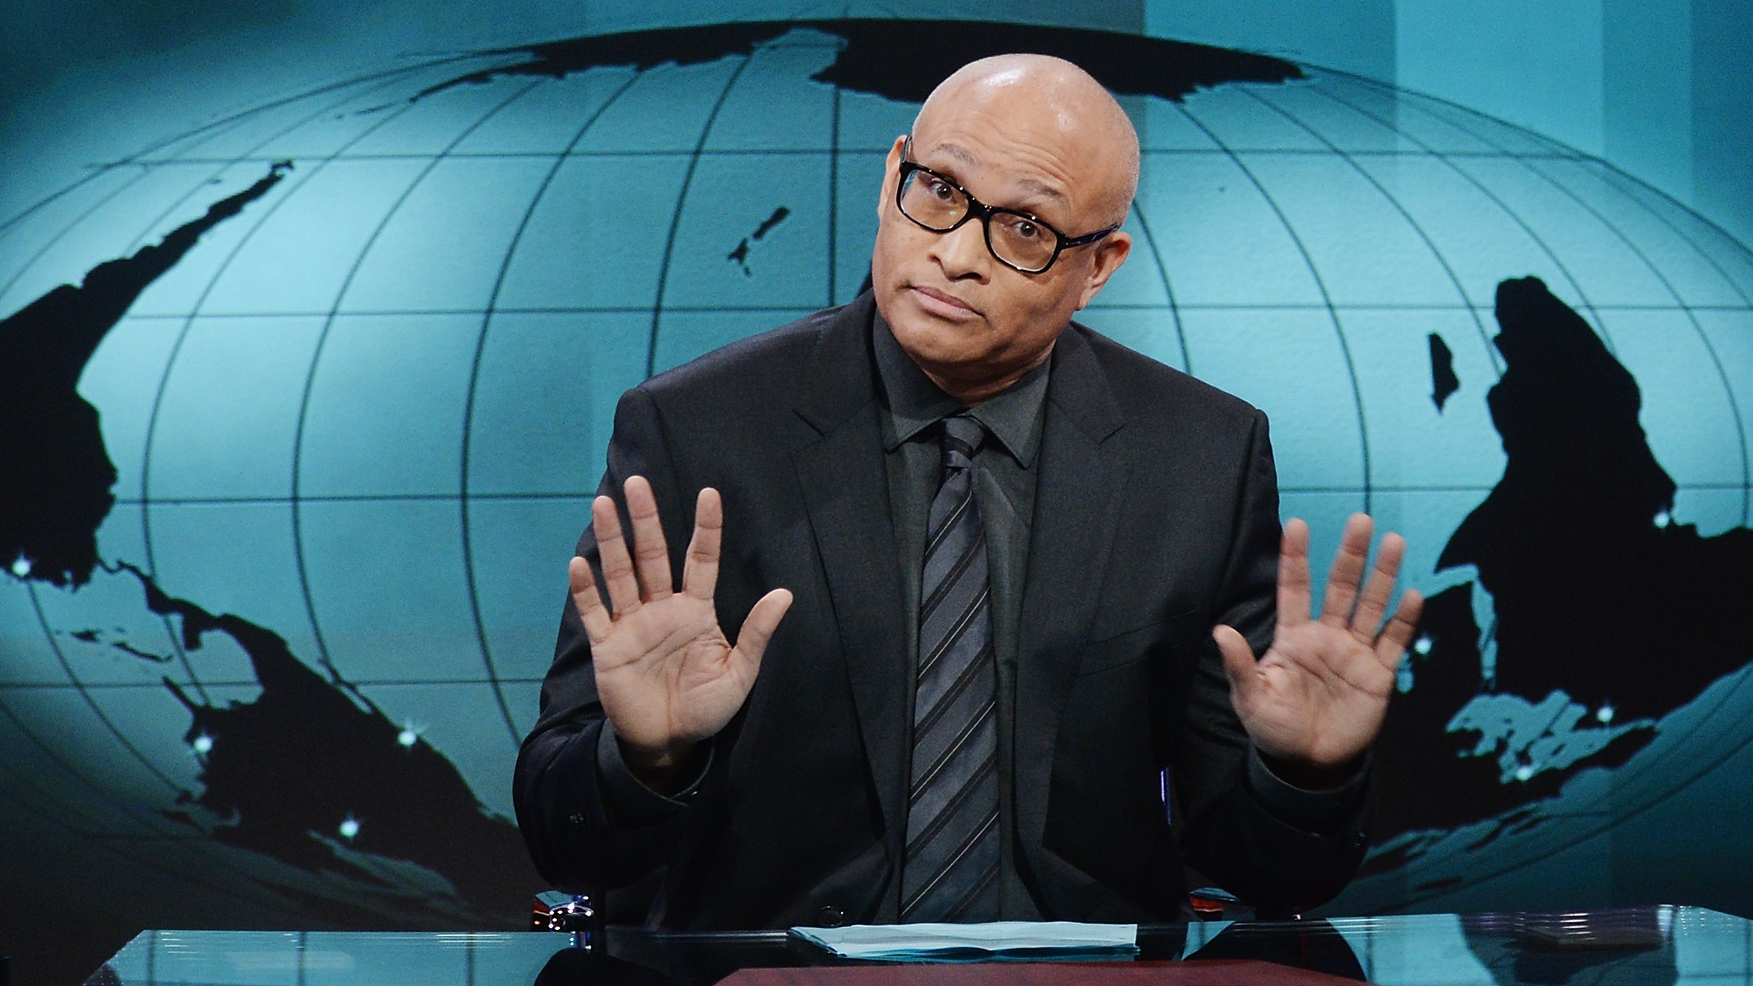 larry wilmore bernie sanderslarry wilmore young, larry wilmore twitter, larry wilmore wiki, larry wilmore, larry wilmore nightly show, larry wilmore daily show, larry wilmore minority report, larry wilmore youtube, larry wilmore imdb, larry wilmore fresh prince, larry wilmore catholic, larry wilmore ratings, larry wilmore net worth, larry wilmore wife, larry wilmore height, larry wilmore bill cosby, larry wilmore tickets, larry wilmore bernie sanders, larry wilmore confederate flag, larry wilmore review